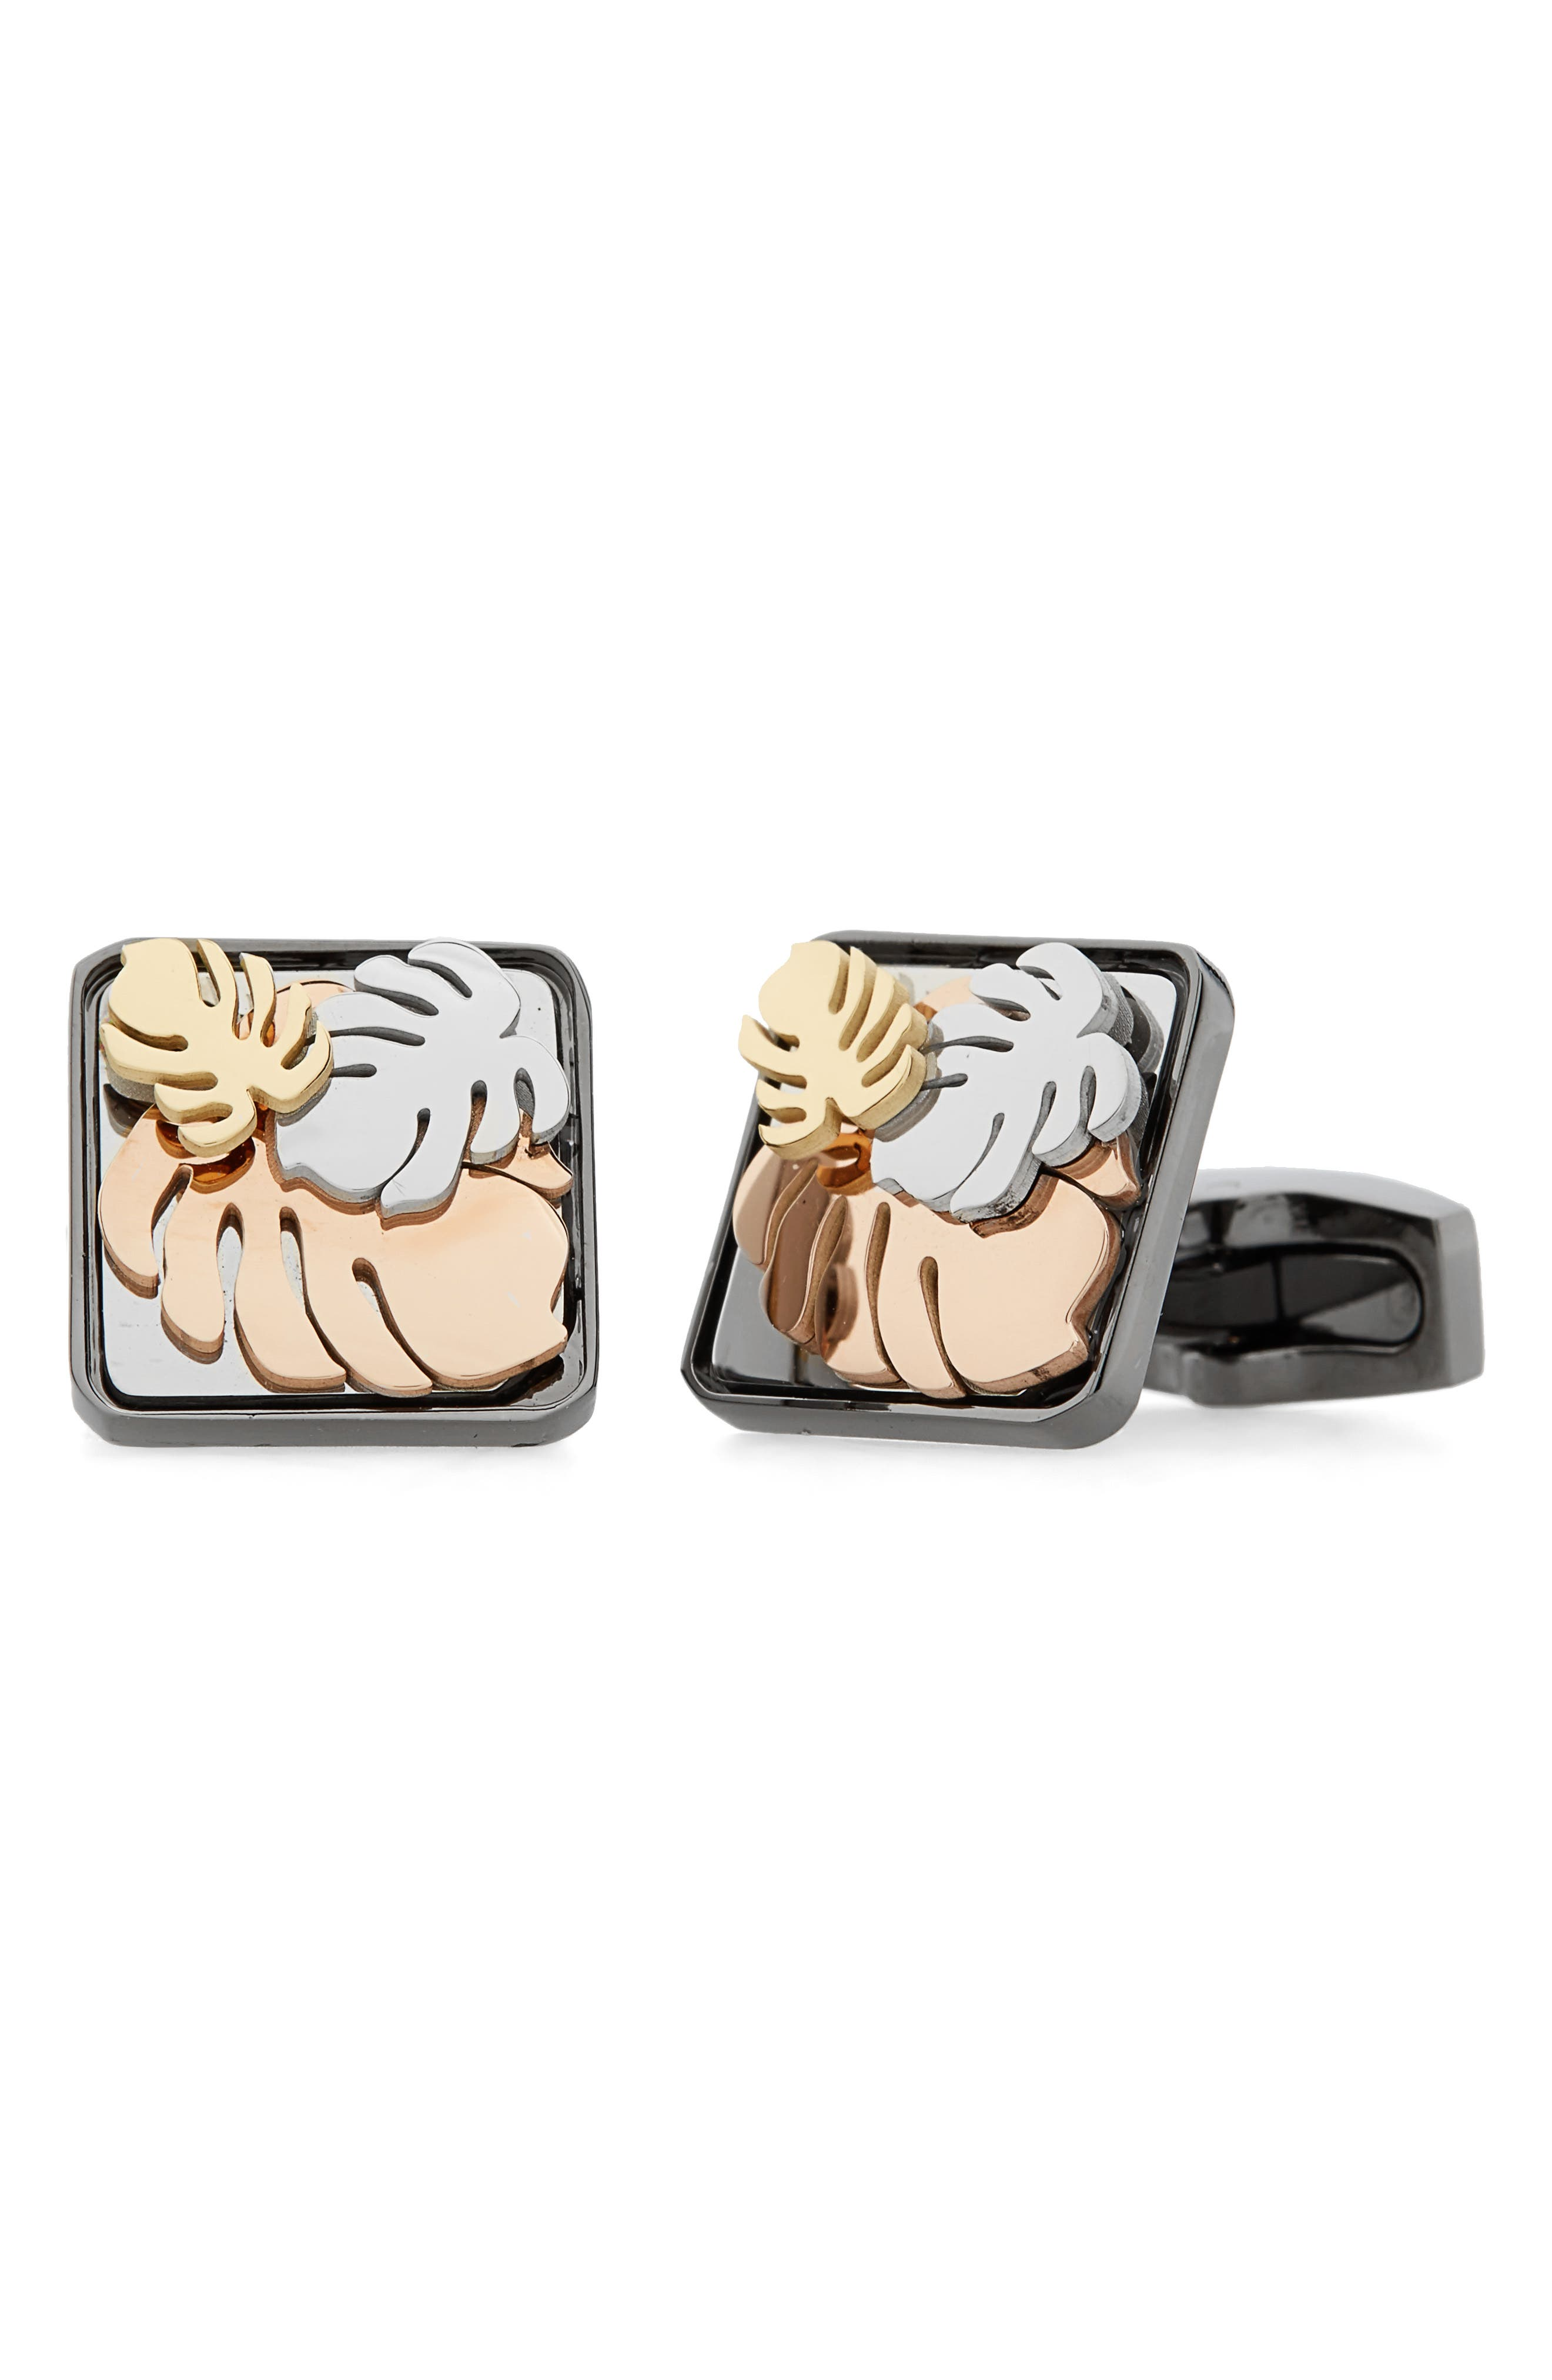 Goals Cuff Links,                         Main,                         color, 022